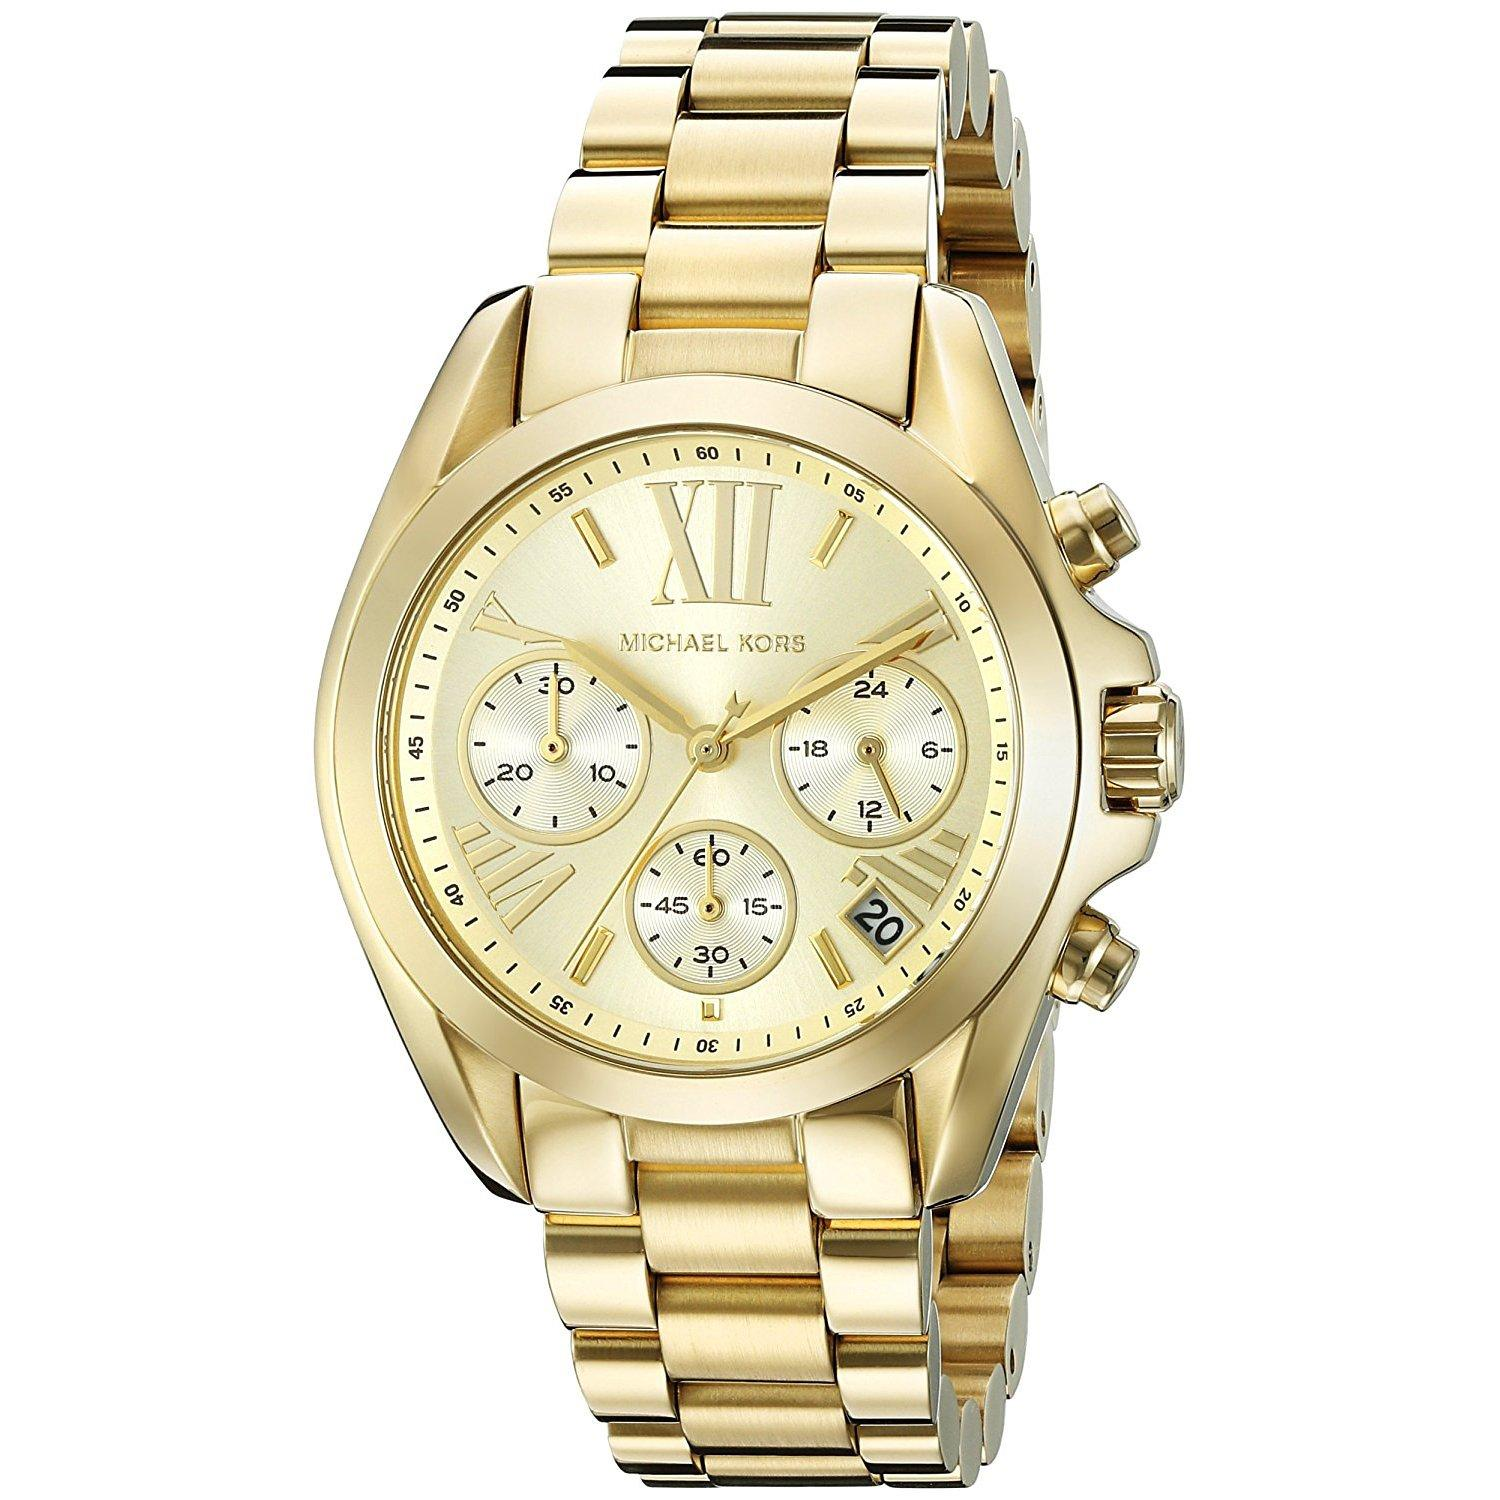 8c09ab8cec69 MK Michael Kors Mini Bradshaw MK5798 (All Gold) Stainless Steel Strap Watch  for Women